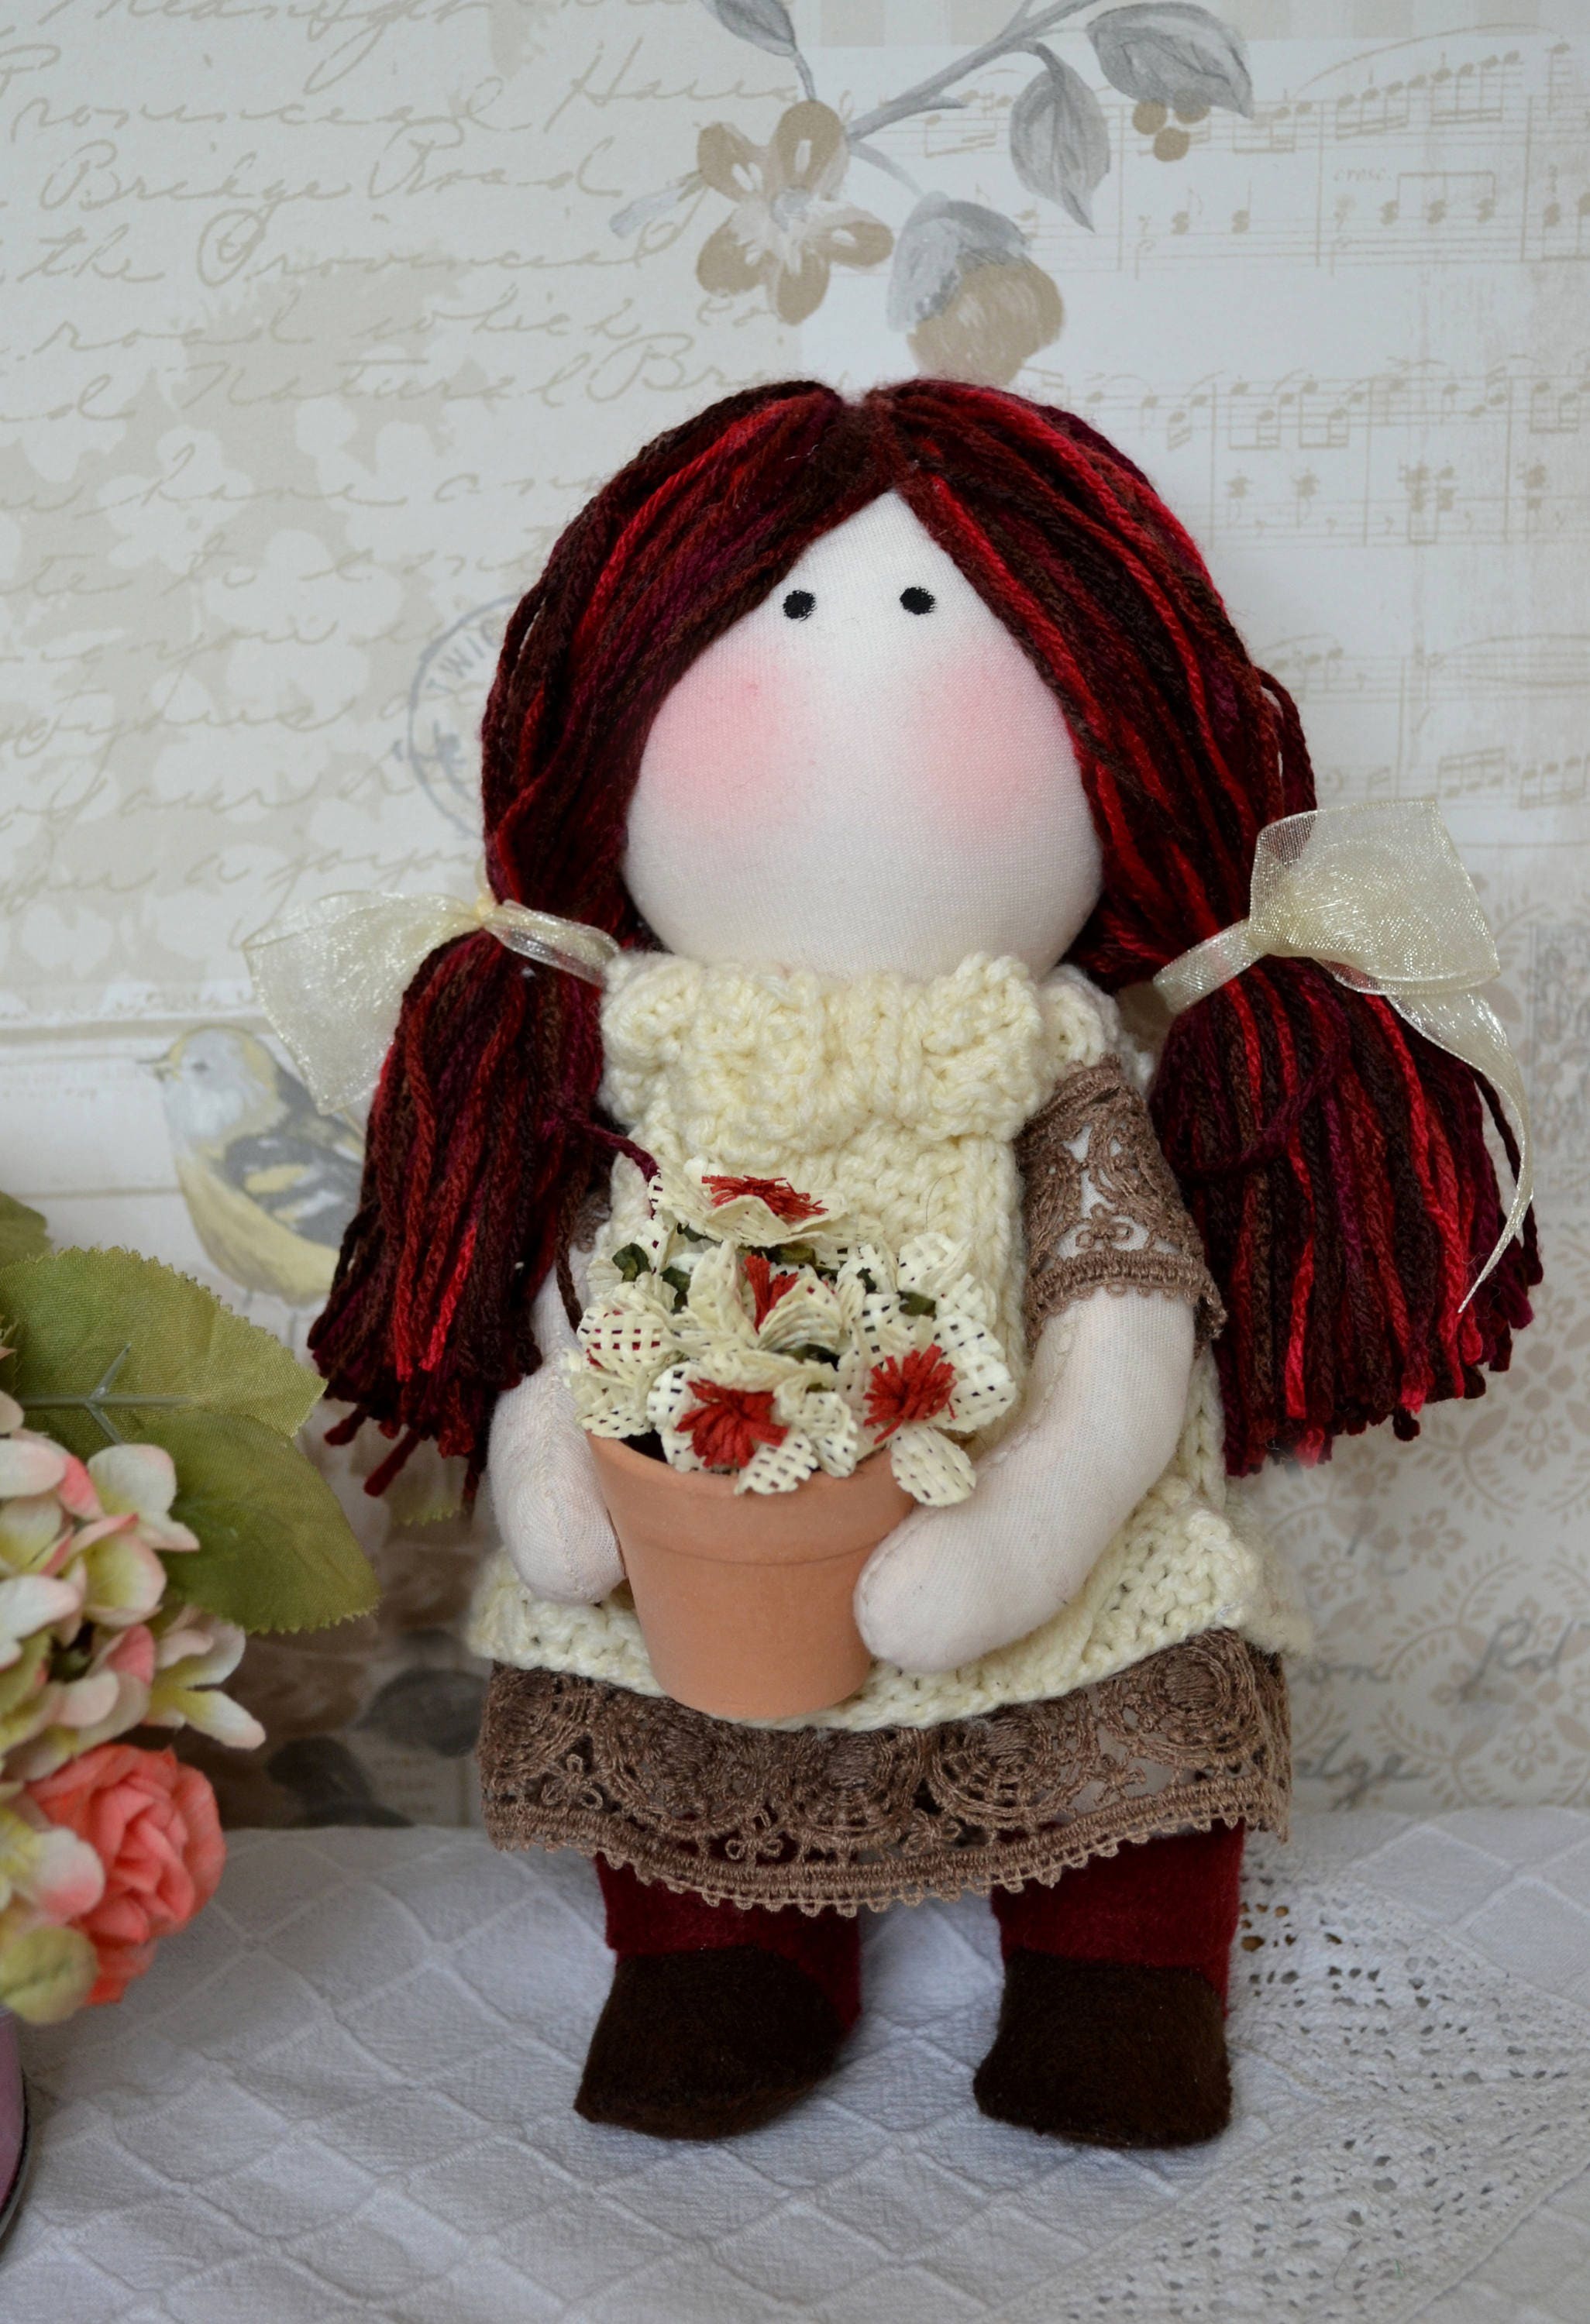 Alice Handmade collectable Lindy doll toy Russian dolls hand stitched personalise cloth craft